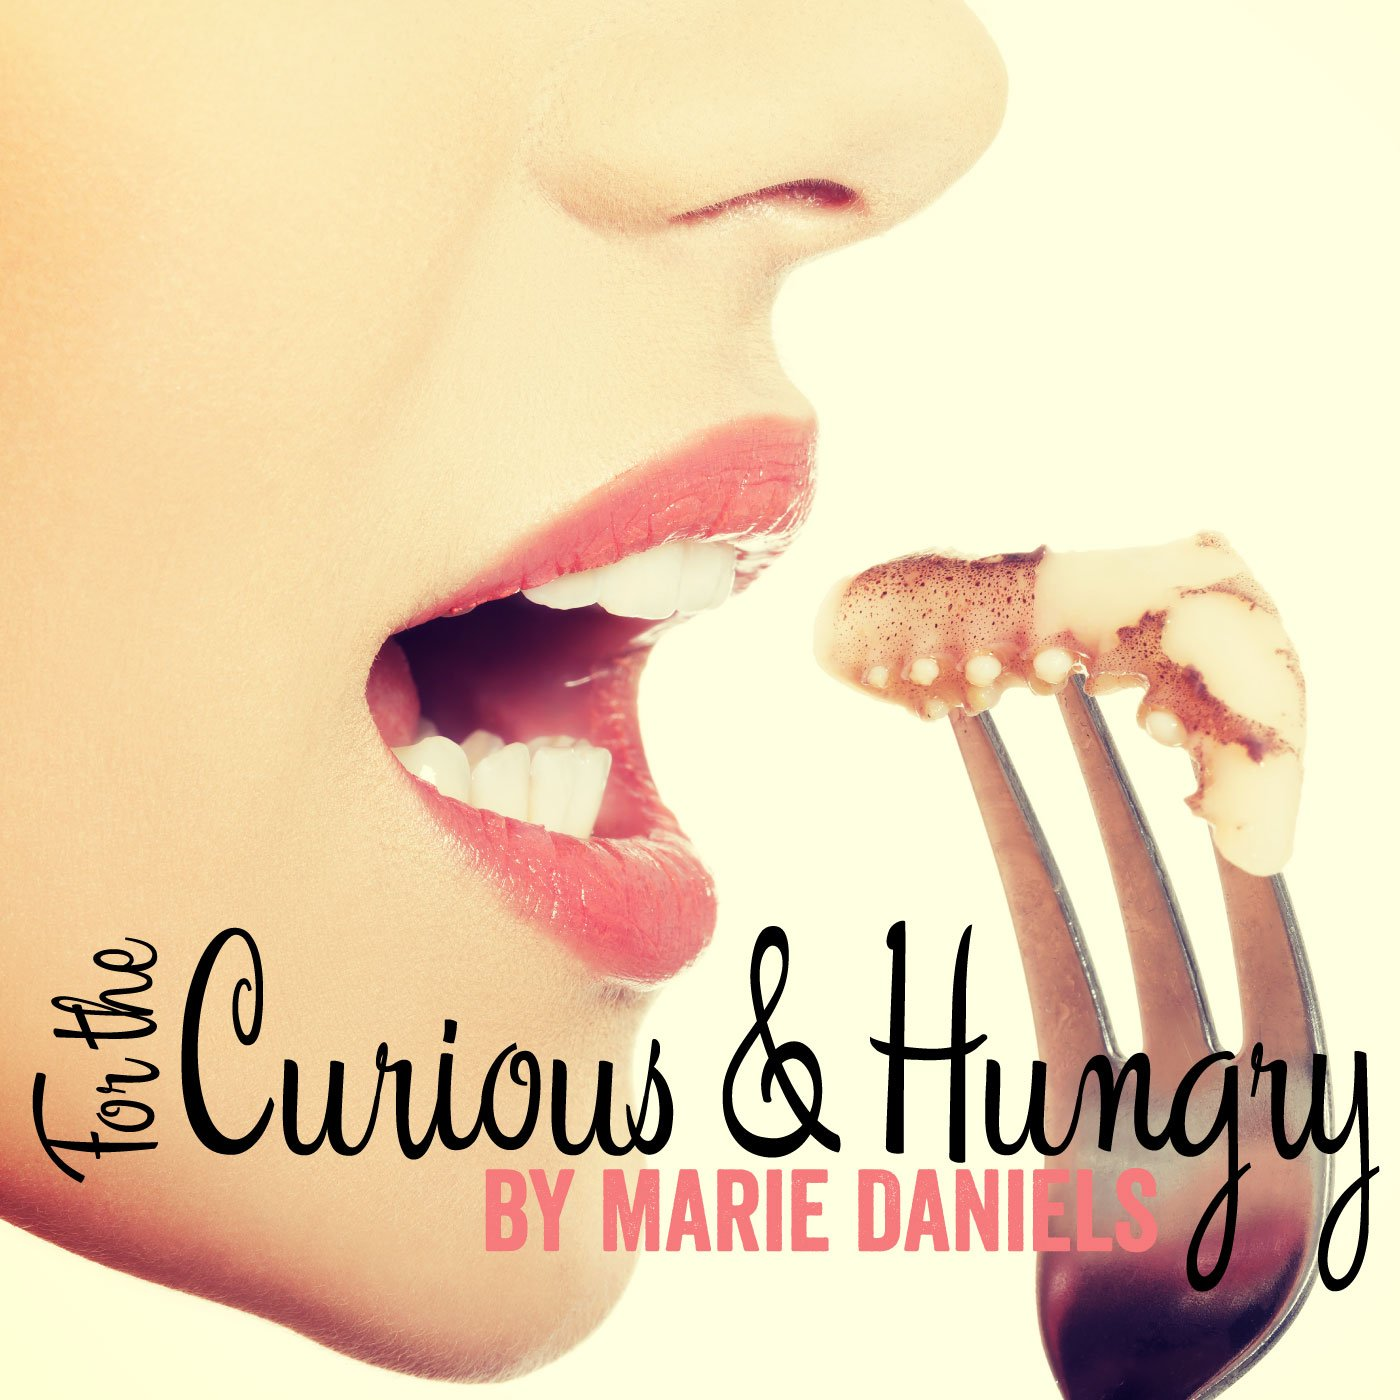 For the Curious & Hungry